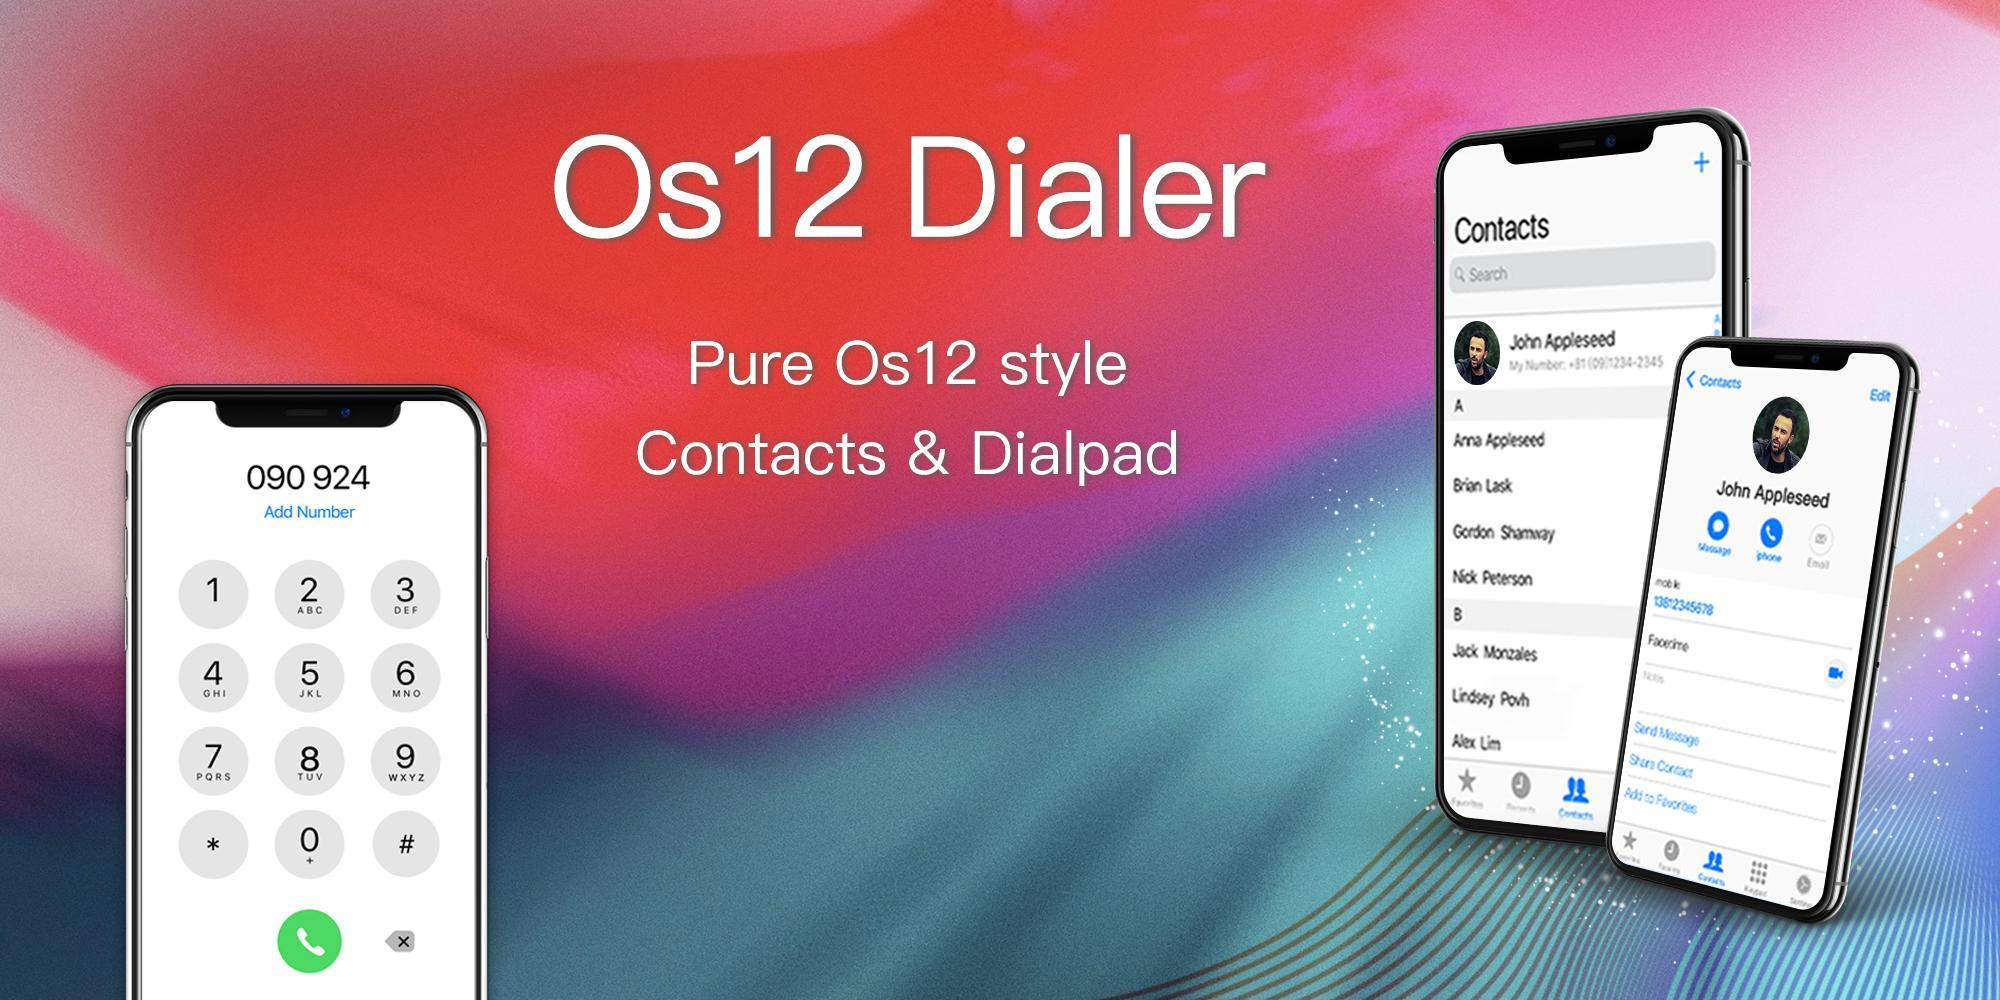 Os12 Dialer - Phone X&Xs Max Contacts & Call Log for Android - APK